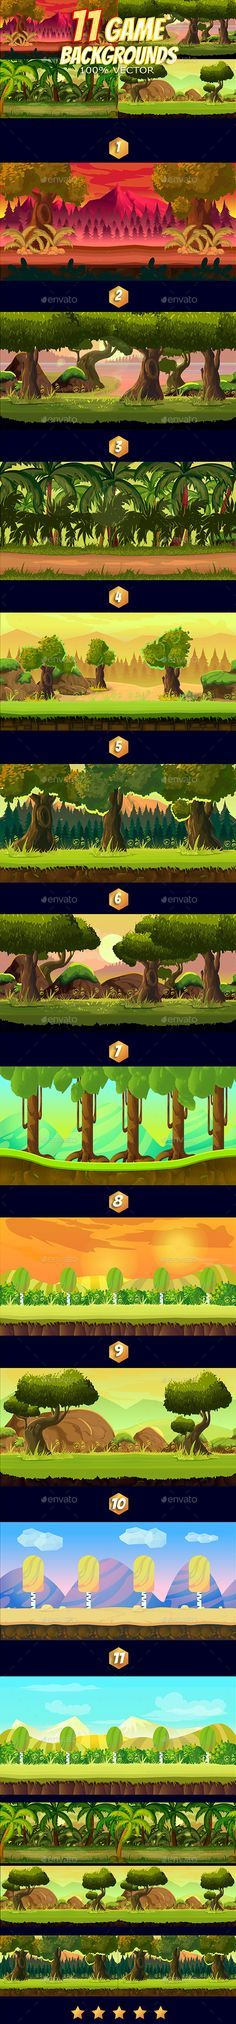 11 Game Backgrounds — Vector EPS #sidescroll #gaming • Available here → https://graphicriver.net/item/11-game-backgrounds/17174947?ref=pxcr